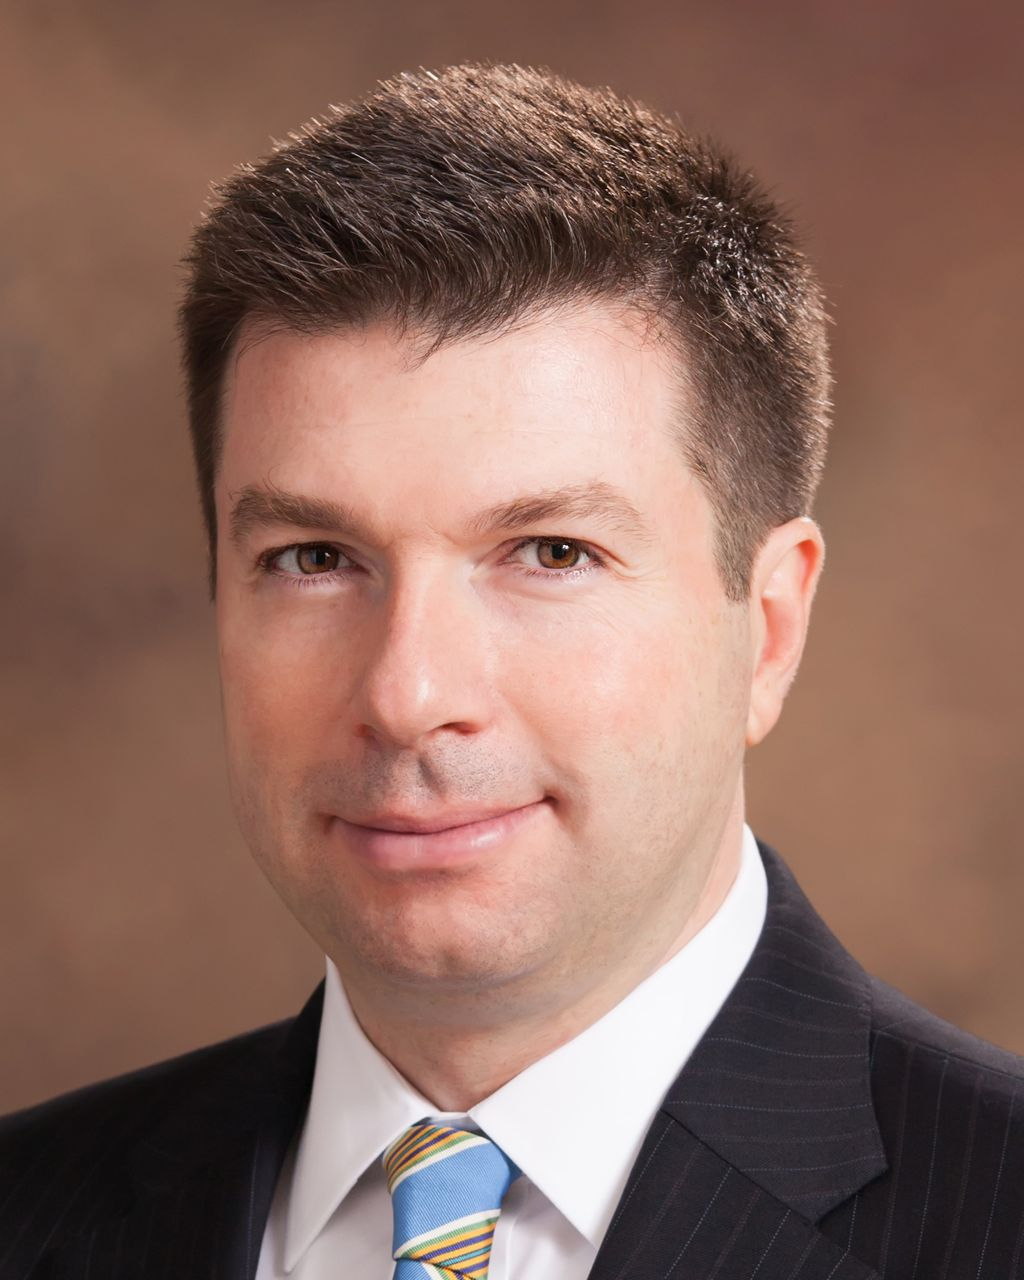 Patrick Cote, financial advisor Wellesley Hills MA